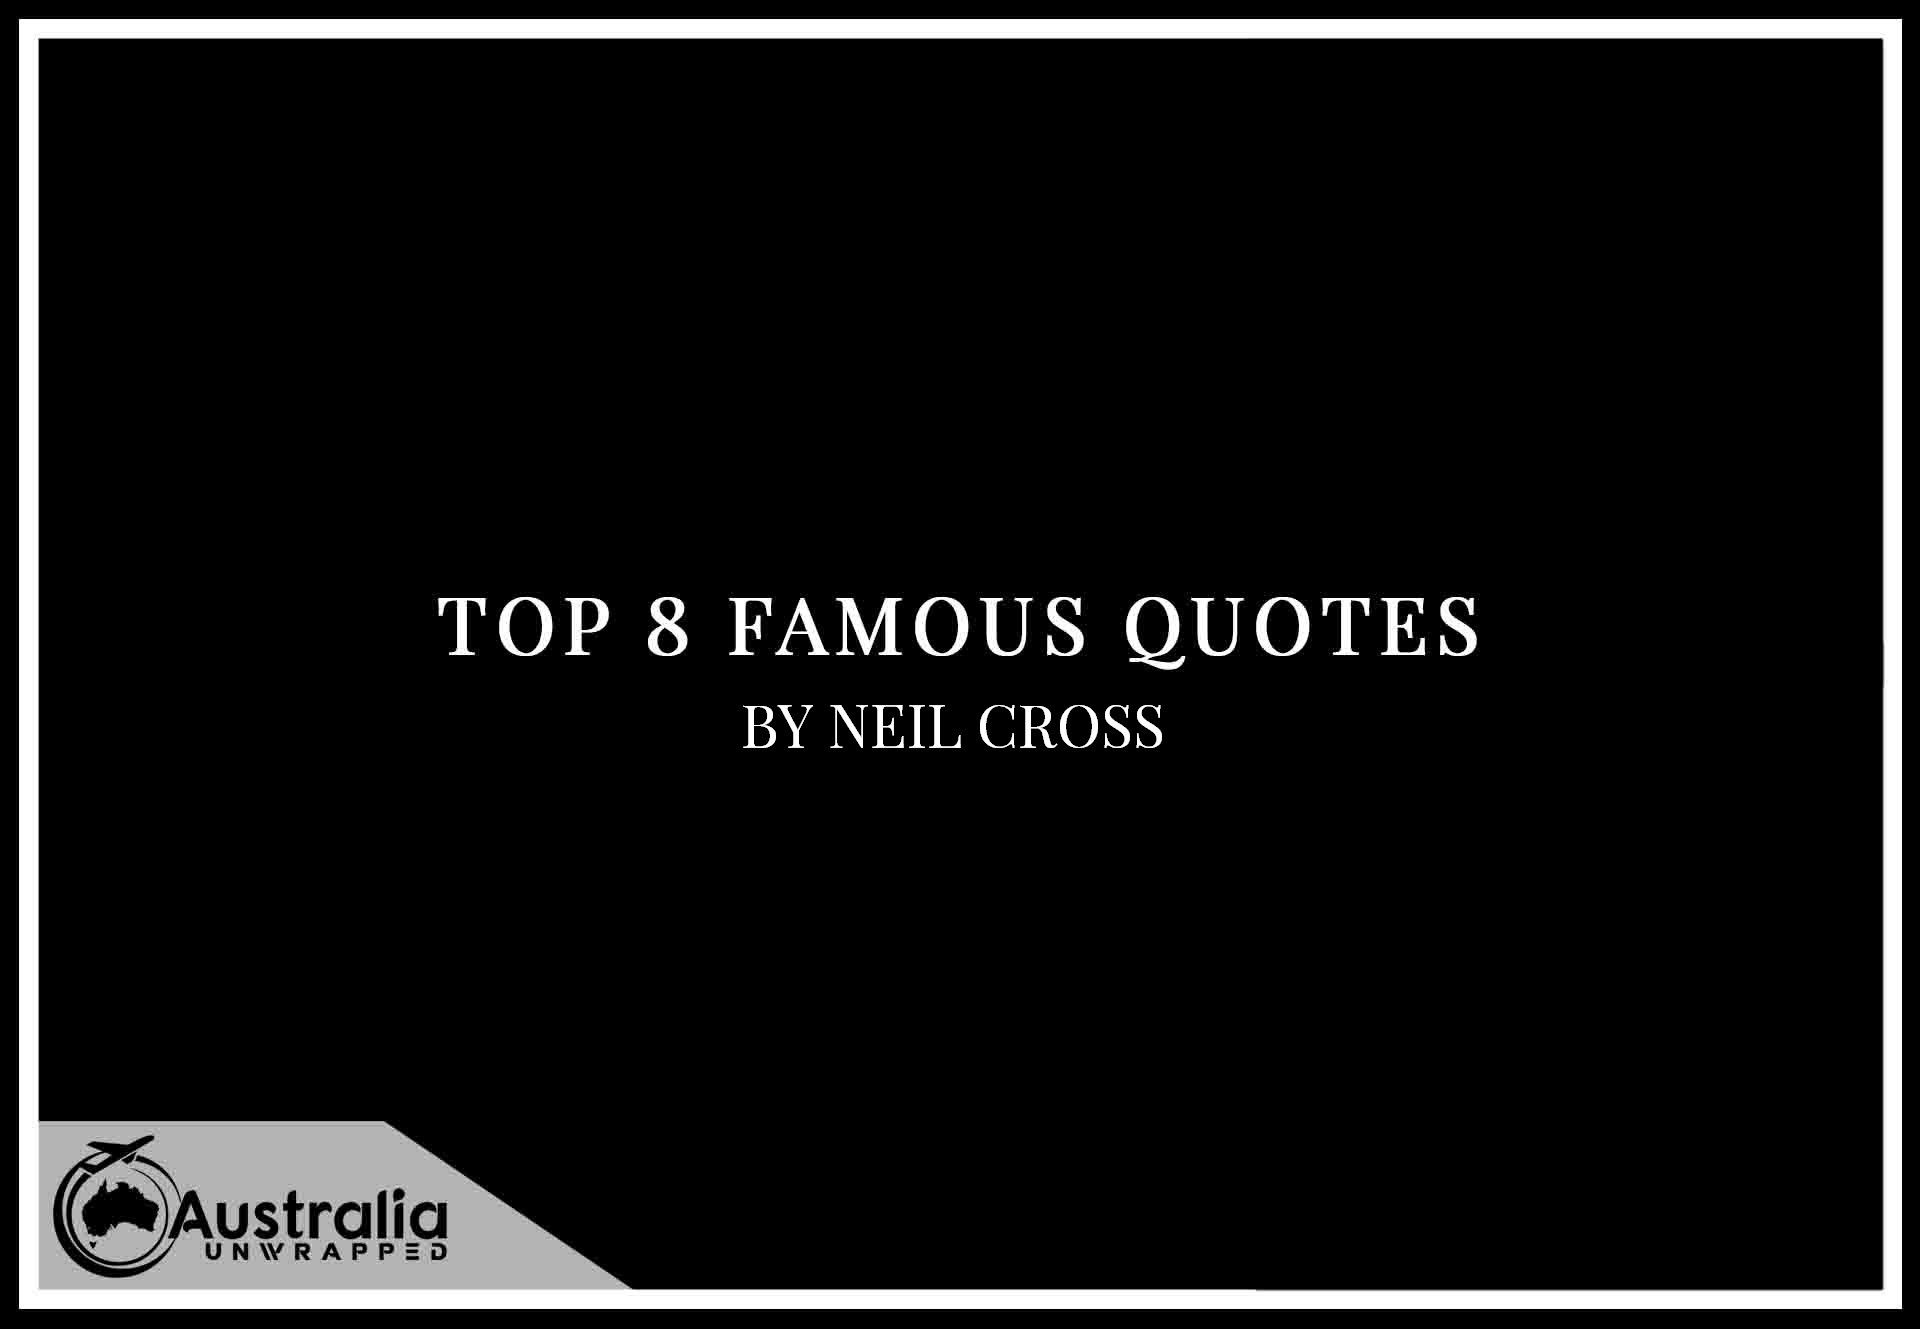 Top 8 Famous Quotes by Author Neil Cross